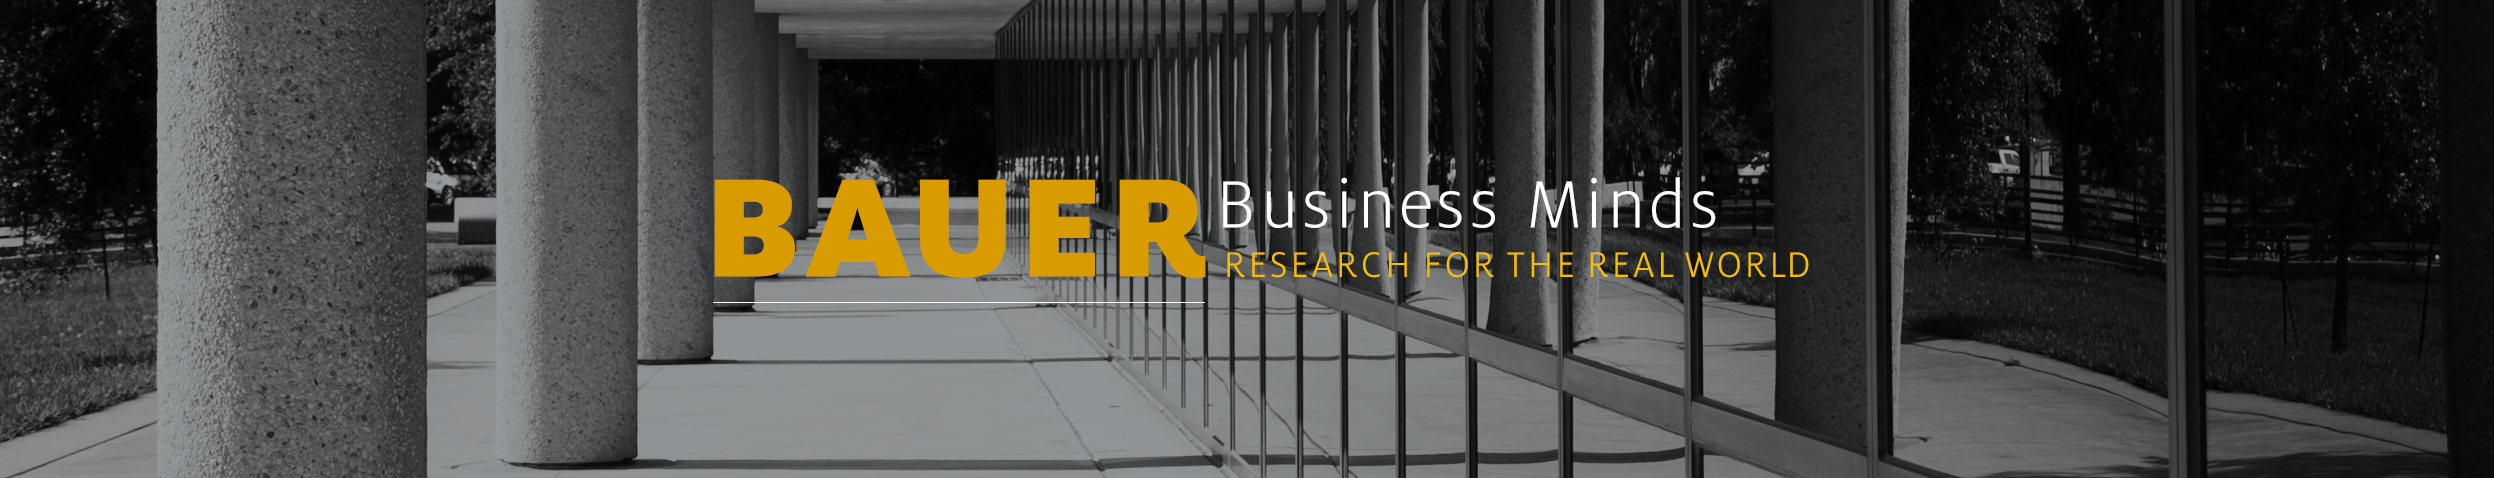 Bauer Business Minds: Research for the Real World